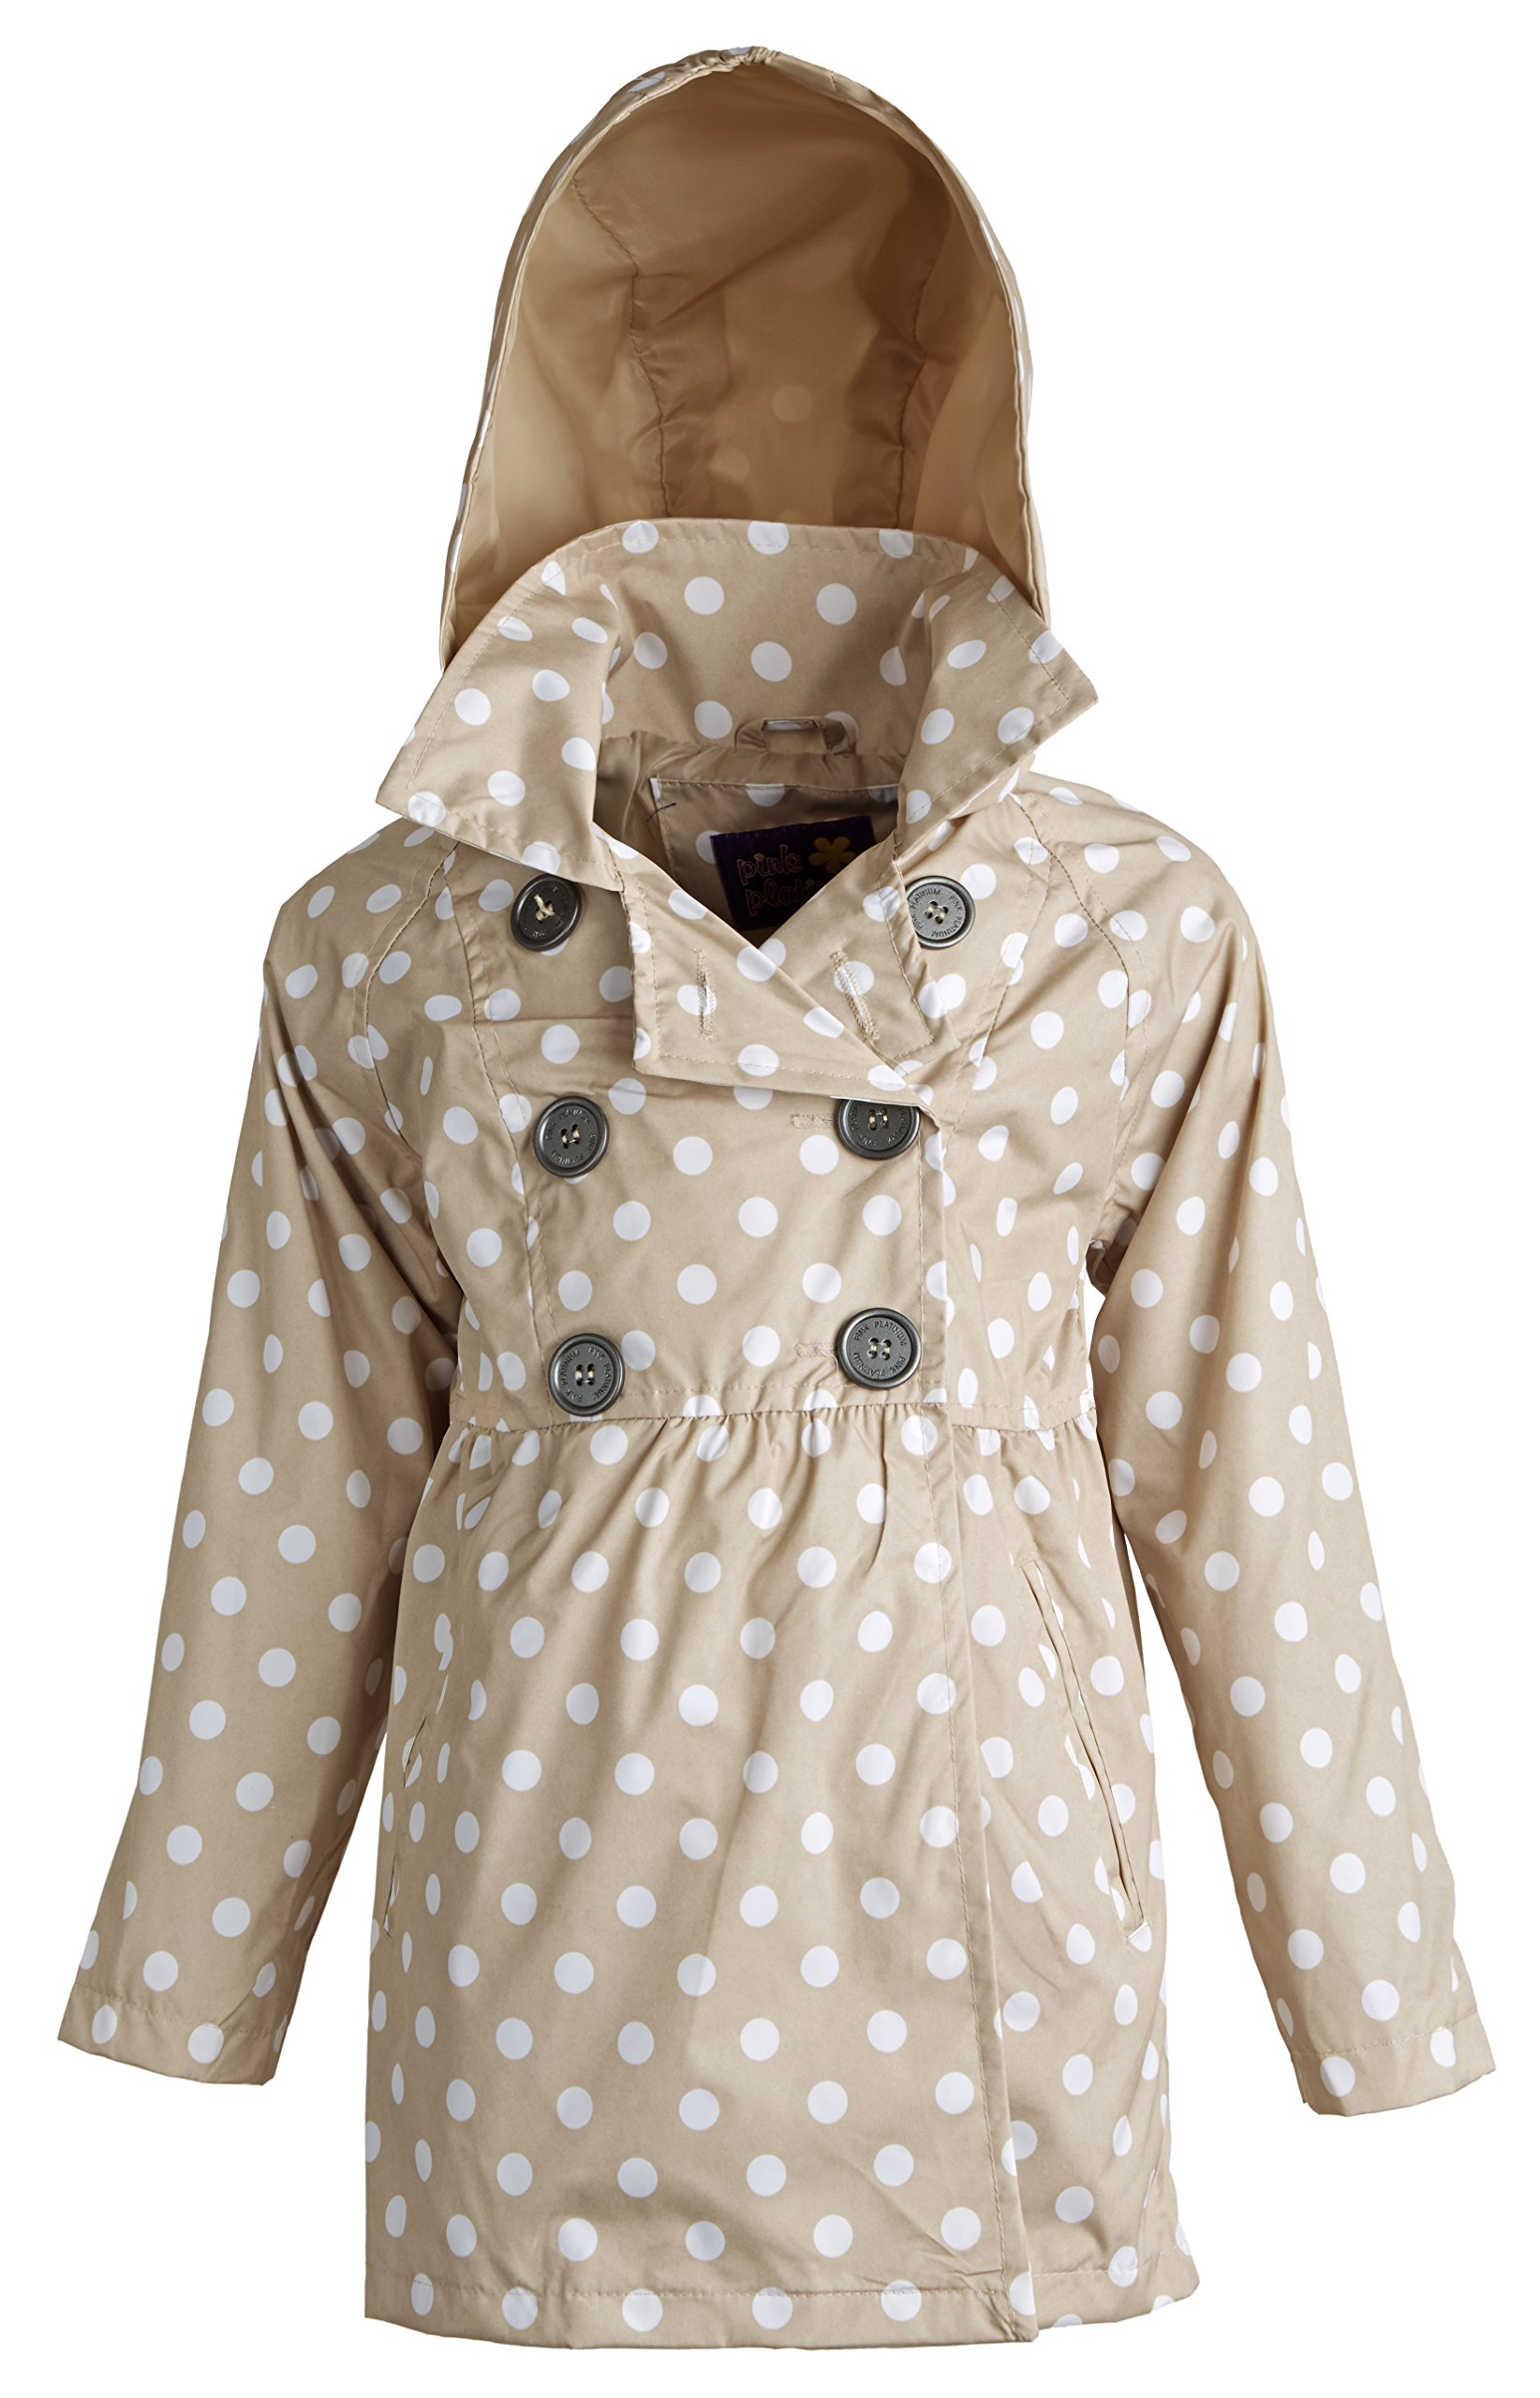 Pink Platinum Little Girls Double Breasted Polka Dot Waisted Spring Trench Coat - Khaki (Size 4) by Pink Platinum (Image #1)